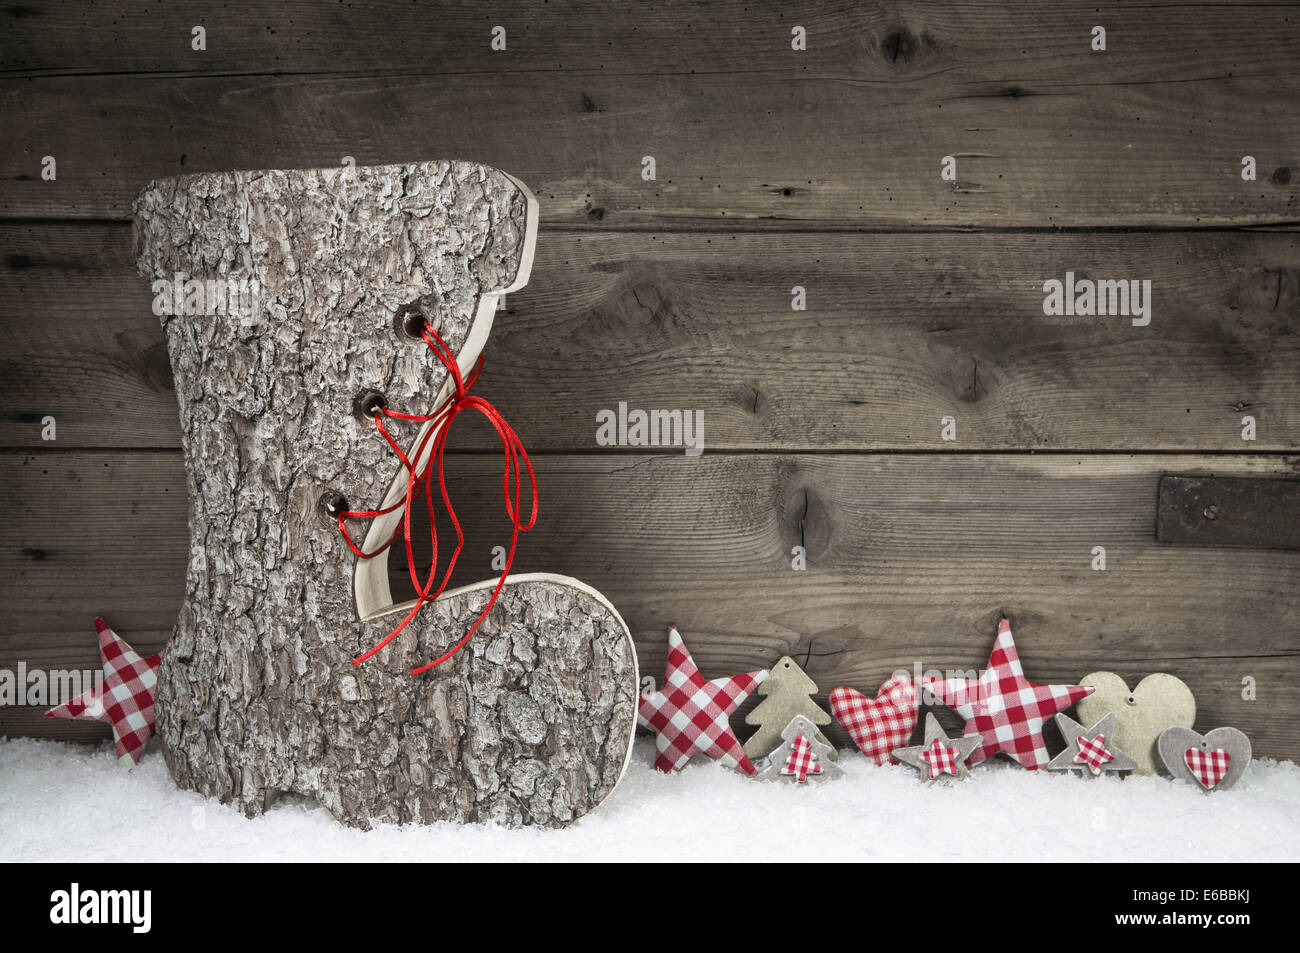 Xmas greeting card with santa boot in red and white colors on wooden background with snow. Idea for christmas decoration. - Stock Image